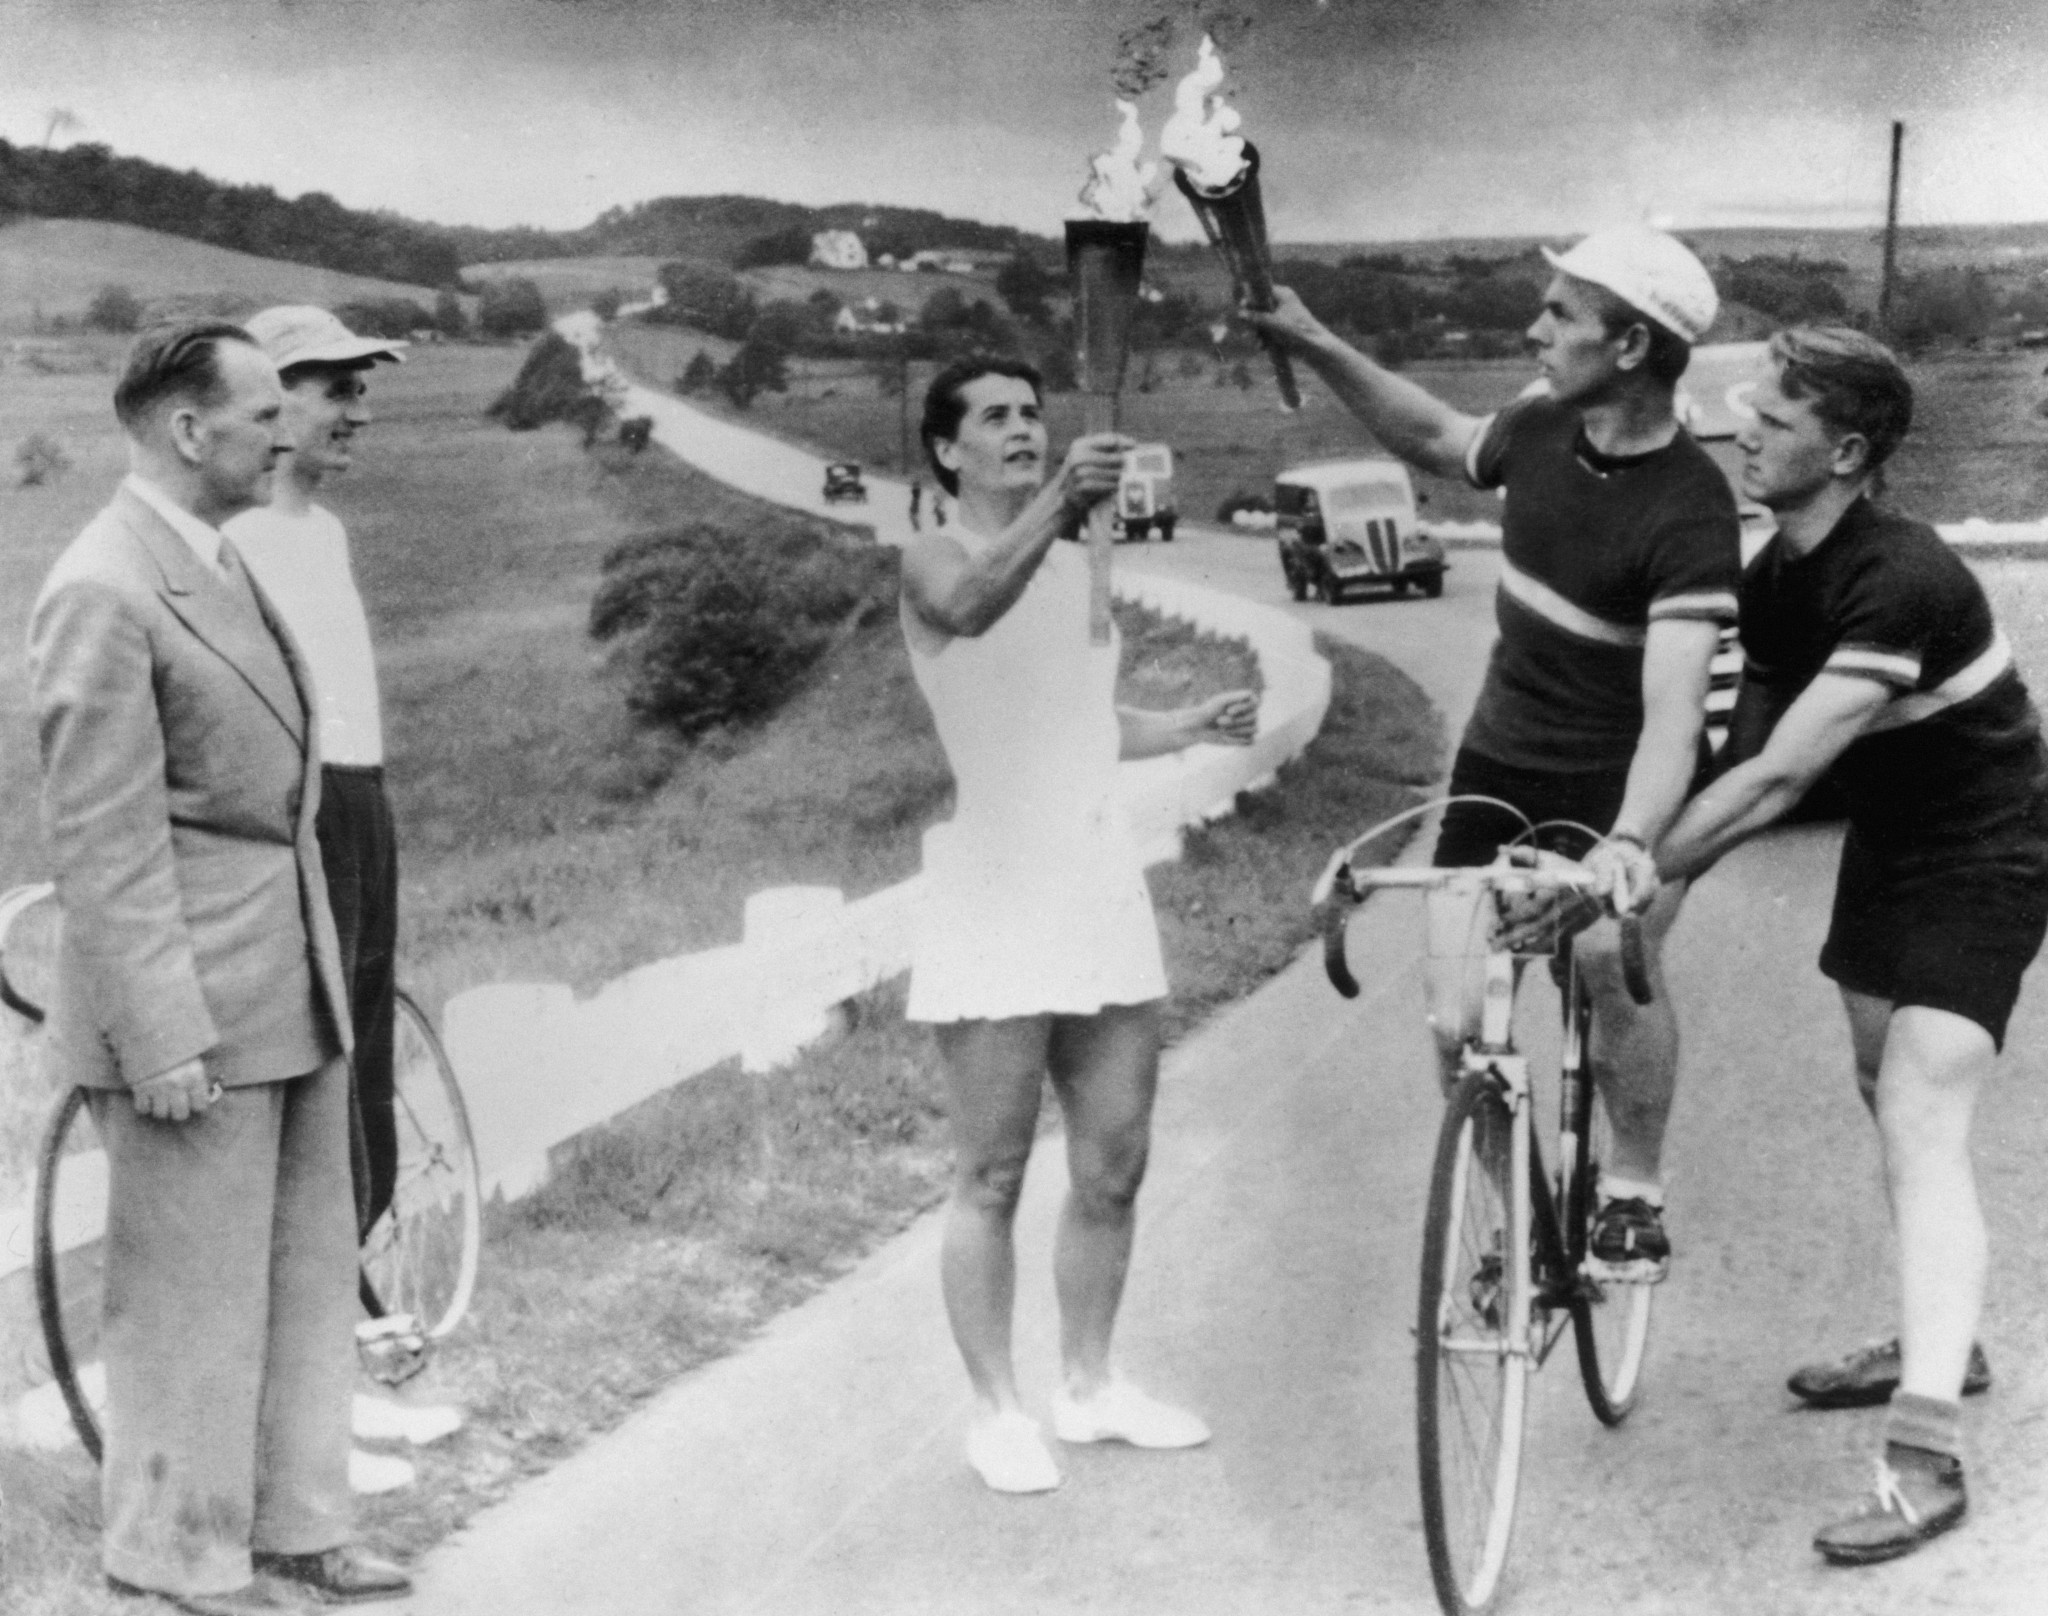 A Relay runner passes the Olympic Flame to a cyclist on the road between Aalborg and Randers in Jutland, before the Helsinki 1952 Games ©Getty Images